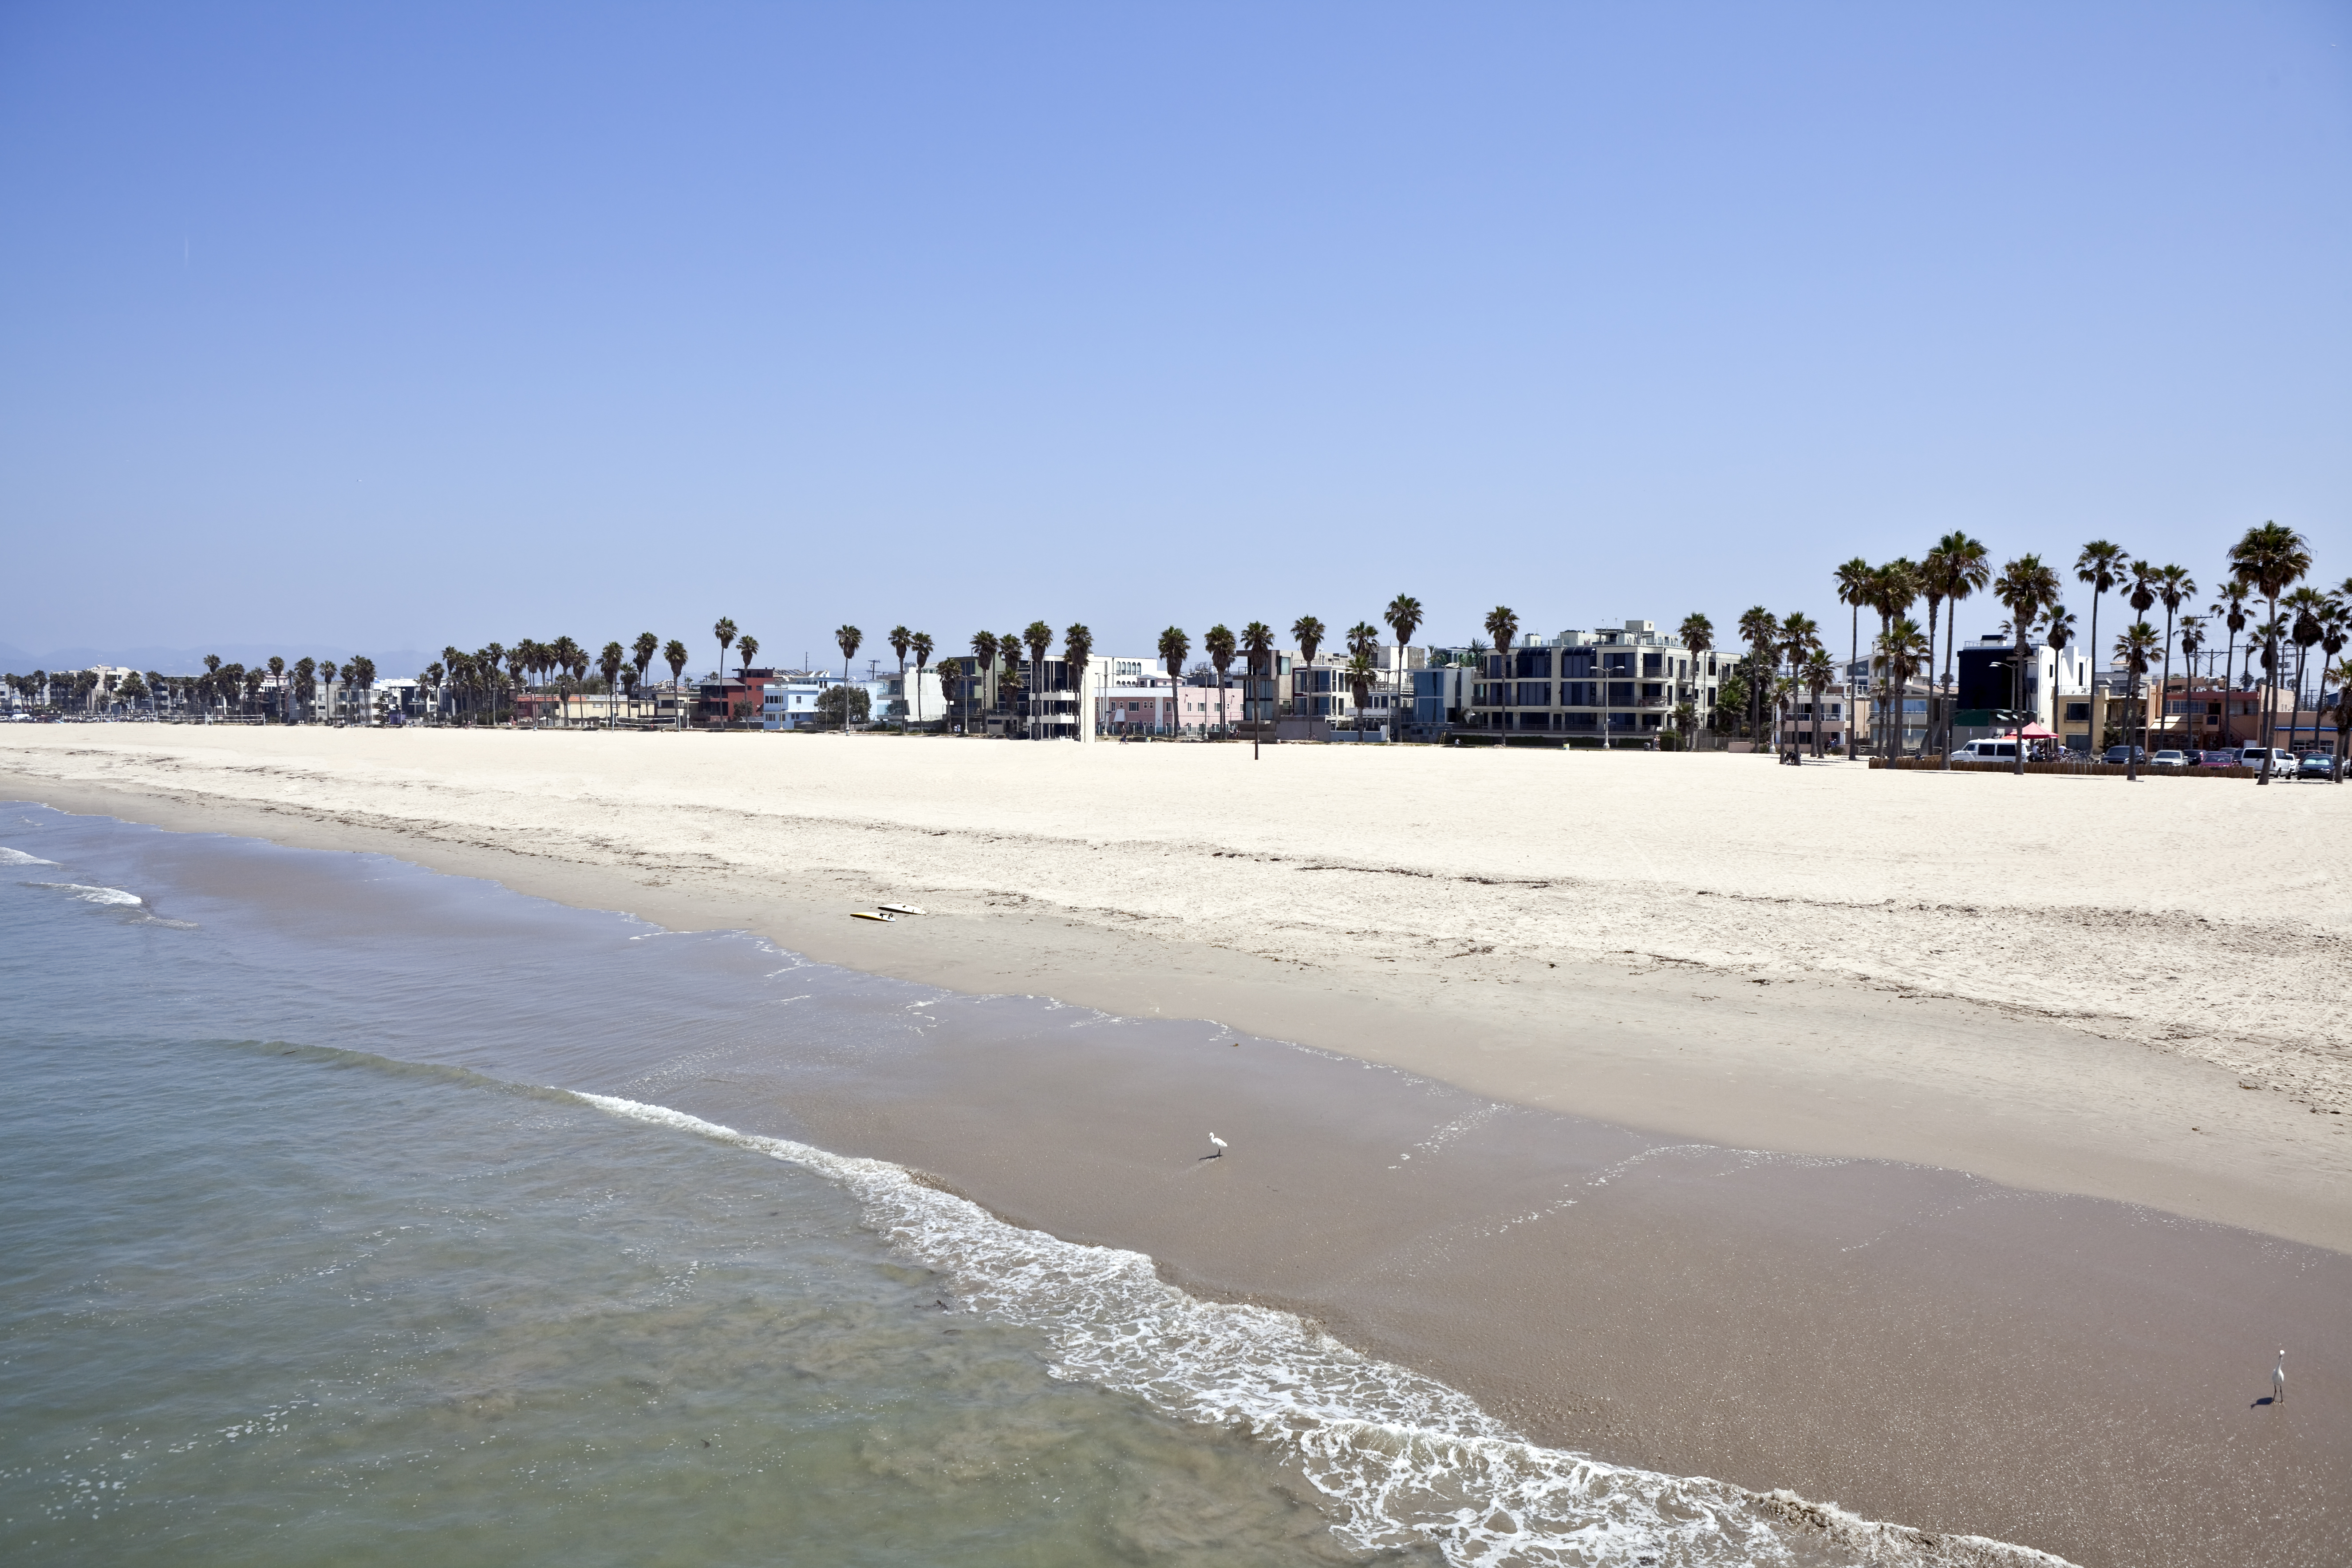 Famous Venice beach California. Viewed from the fishing pier.